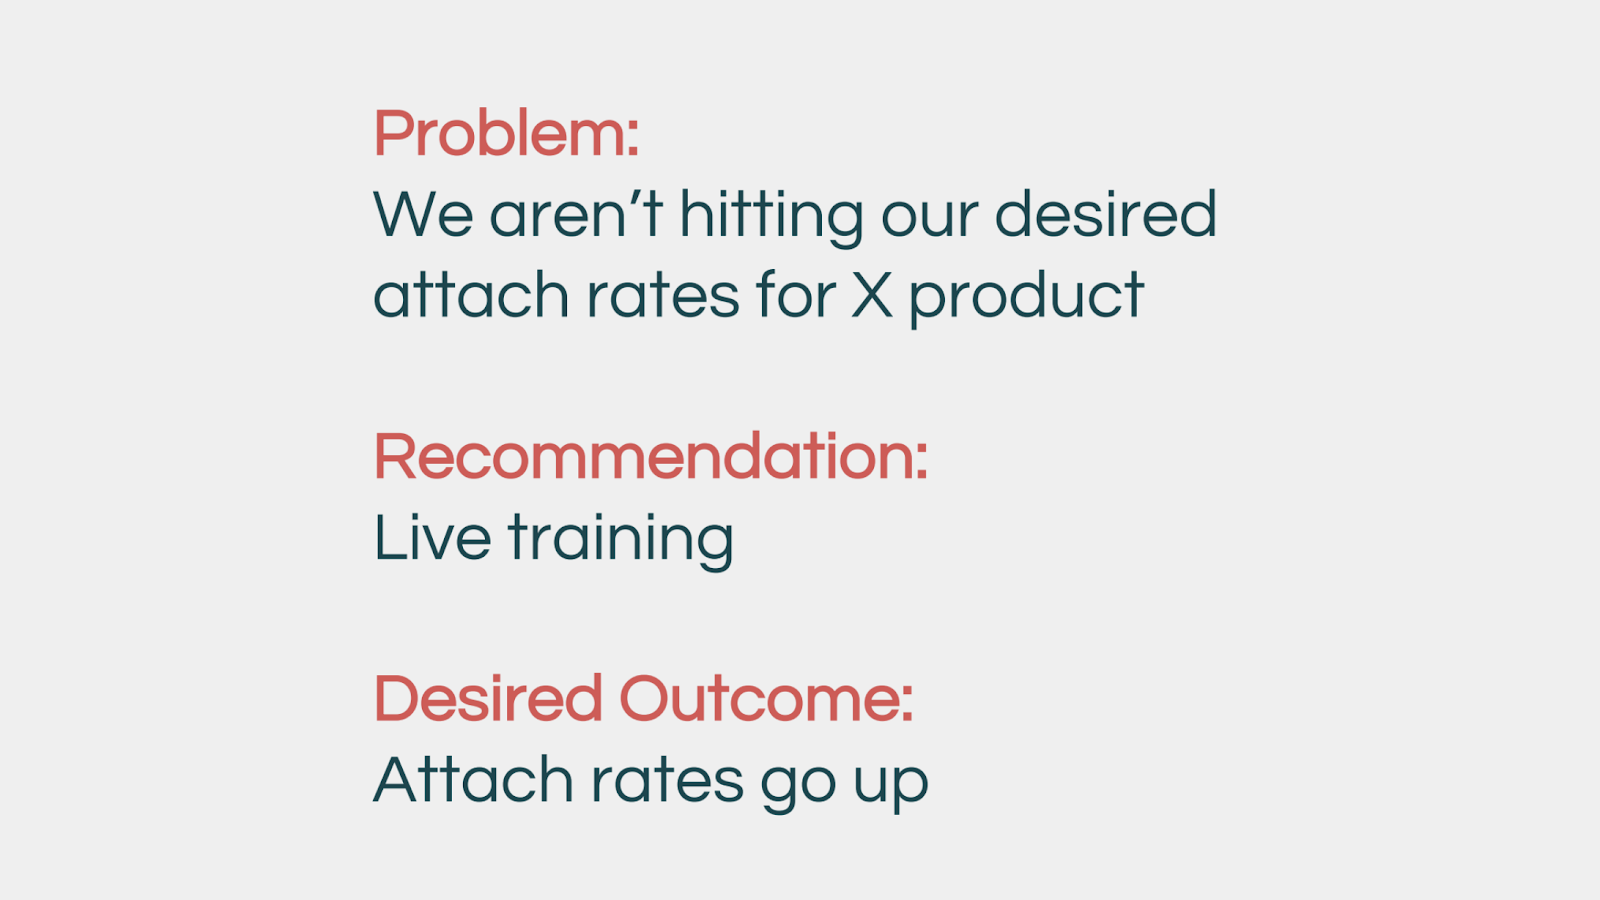 problem, recommendation, desired outcome